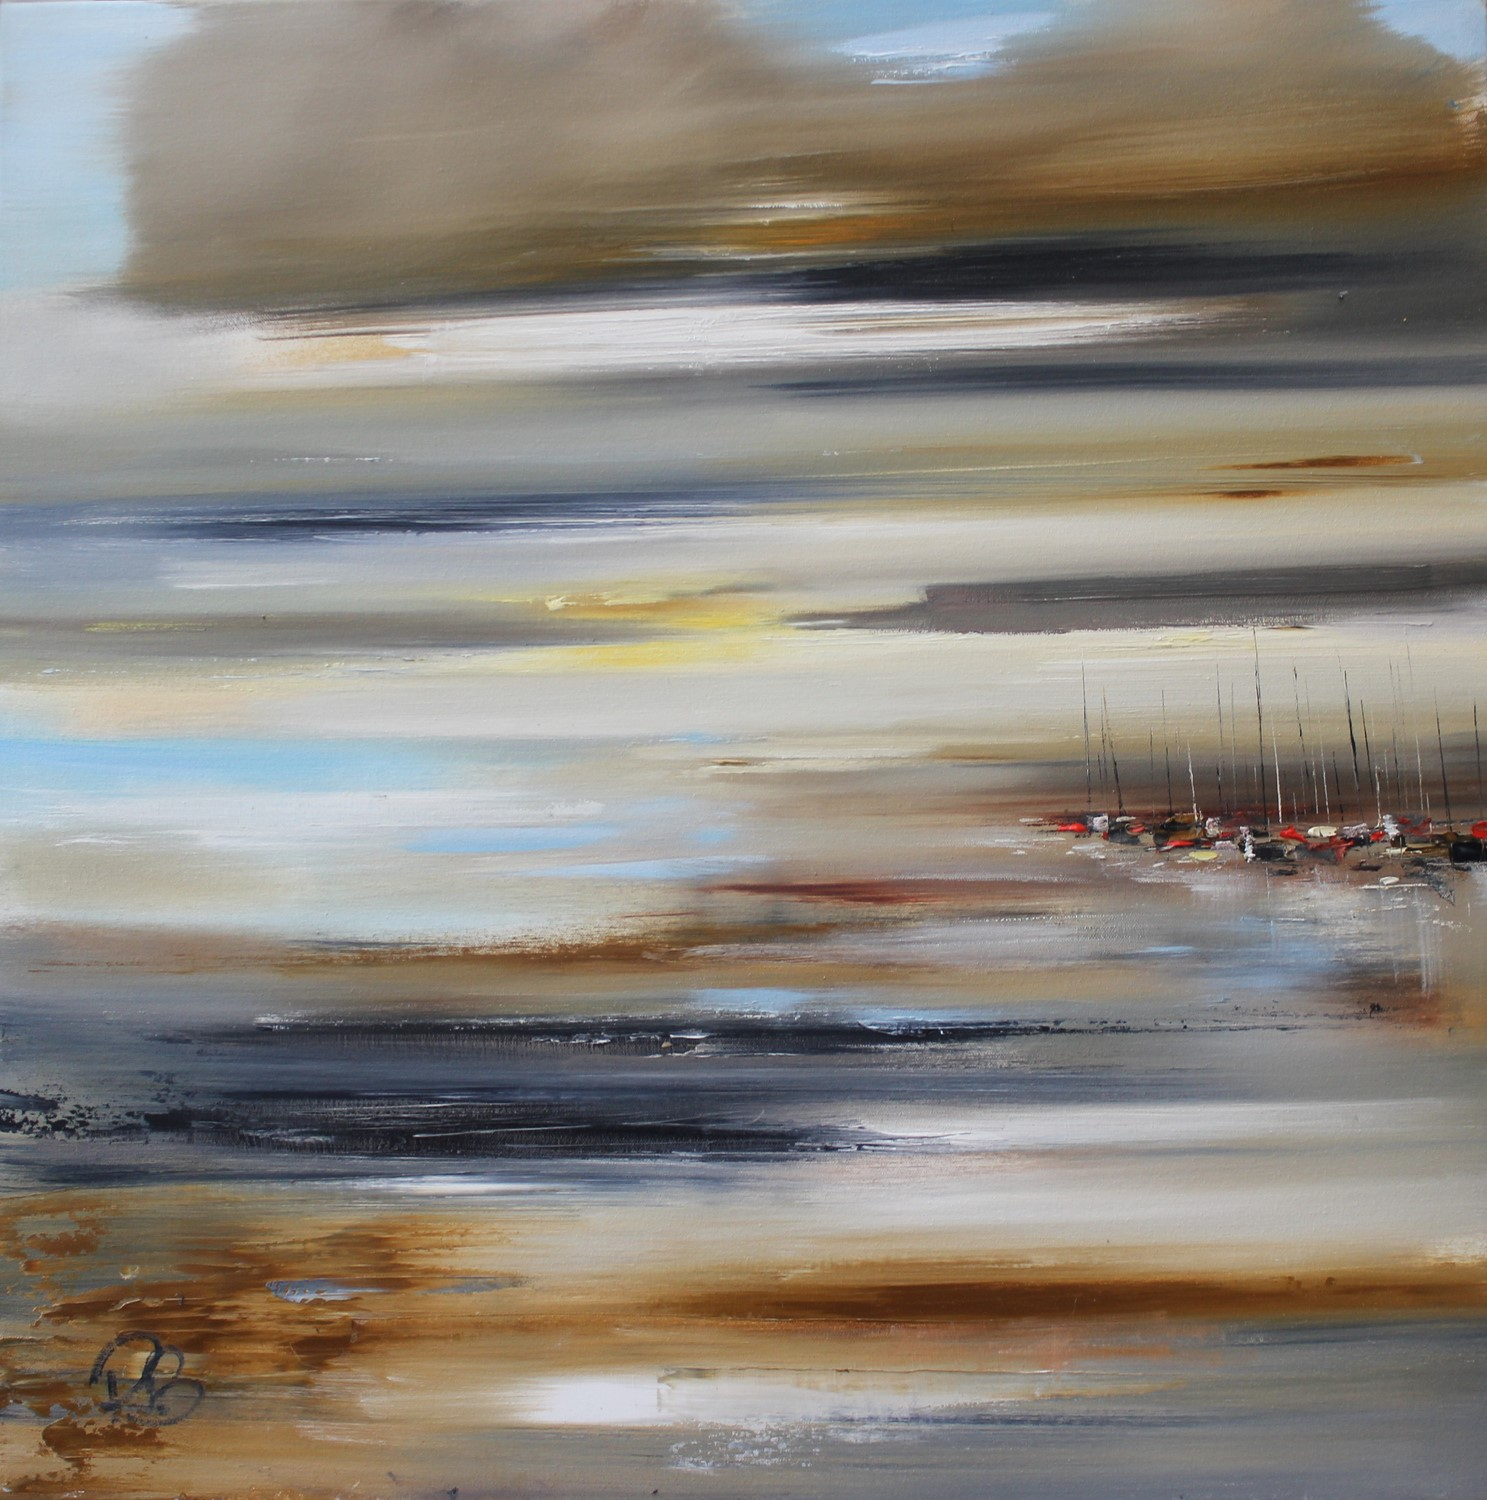 'View Across the Bay' by artist Rosanne Barr